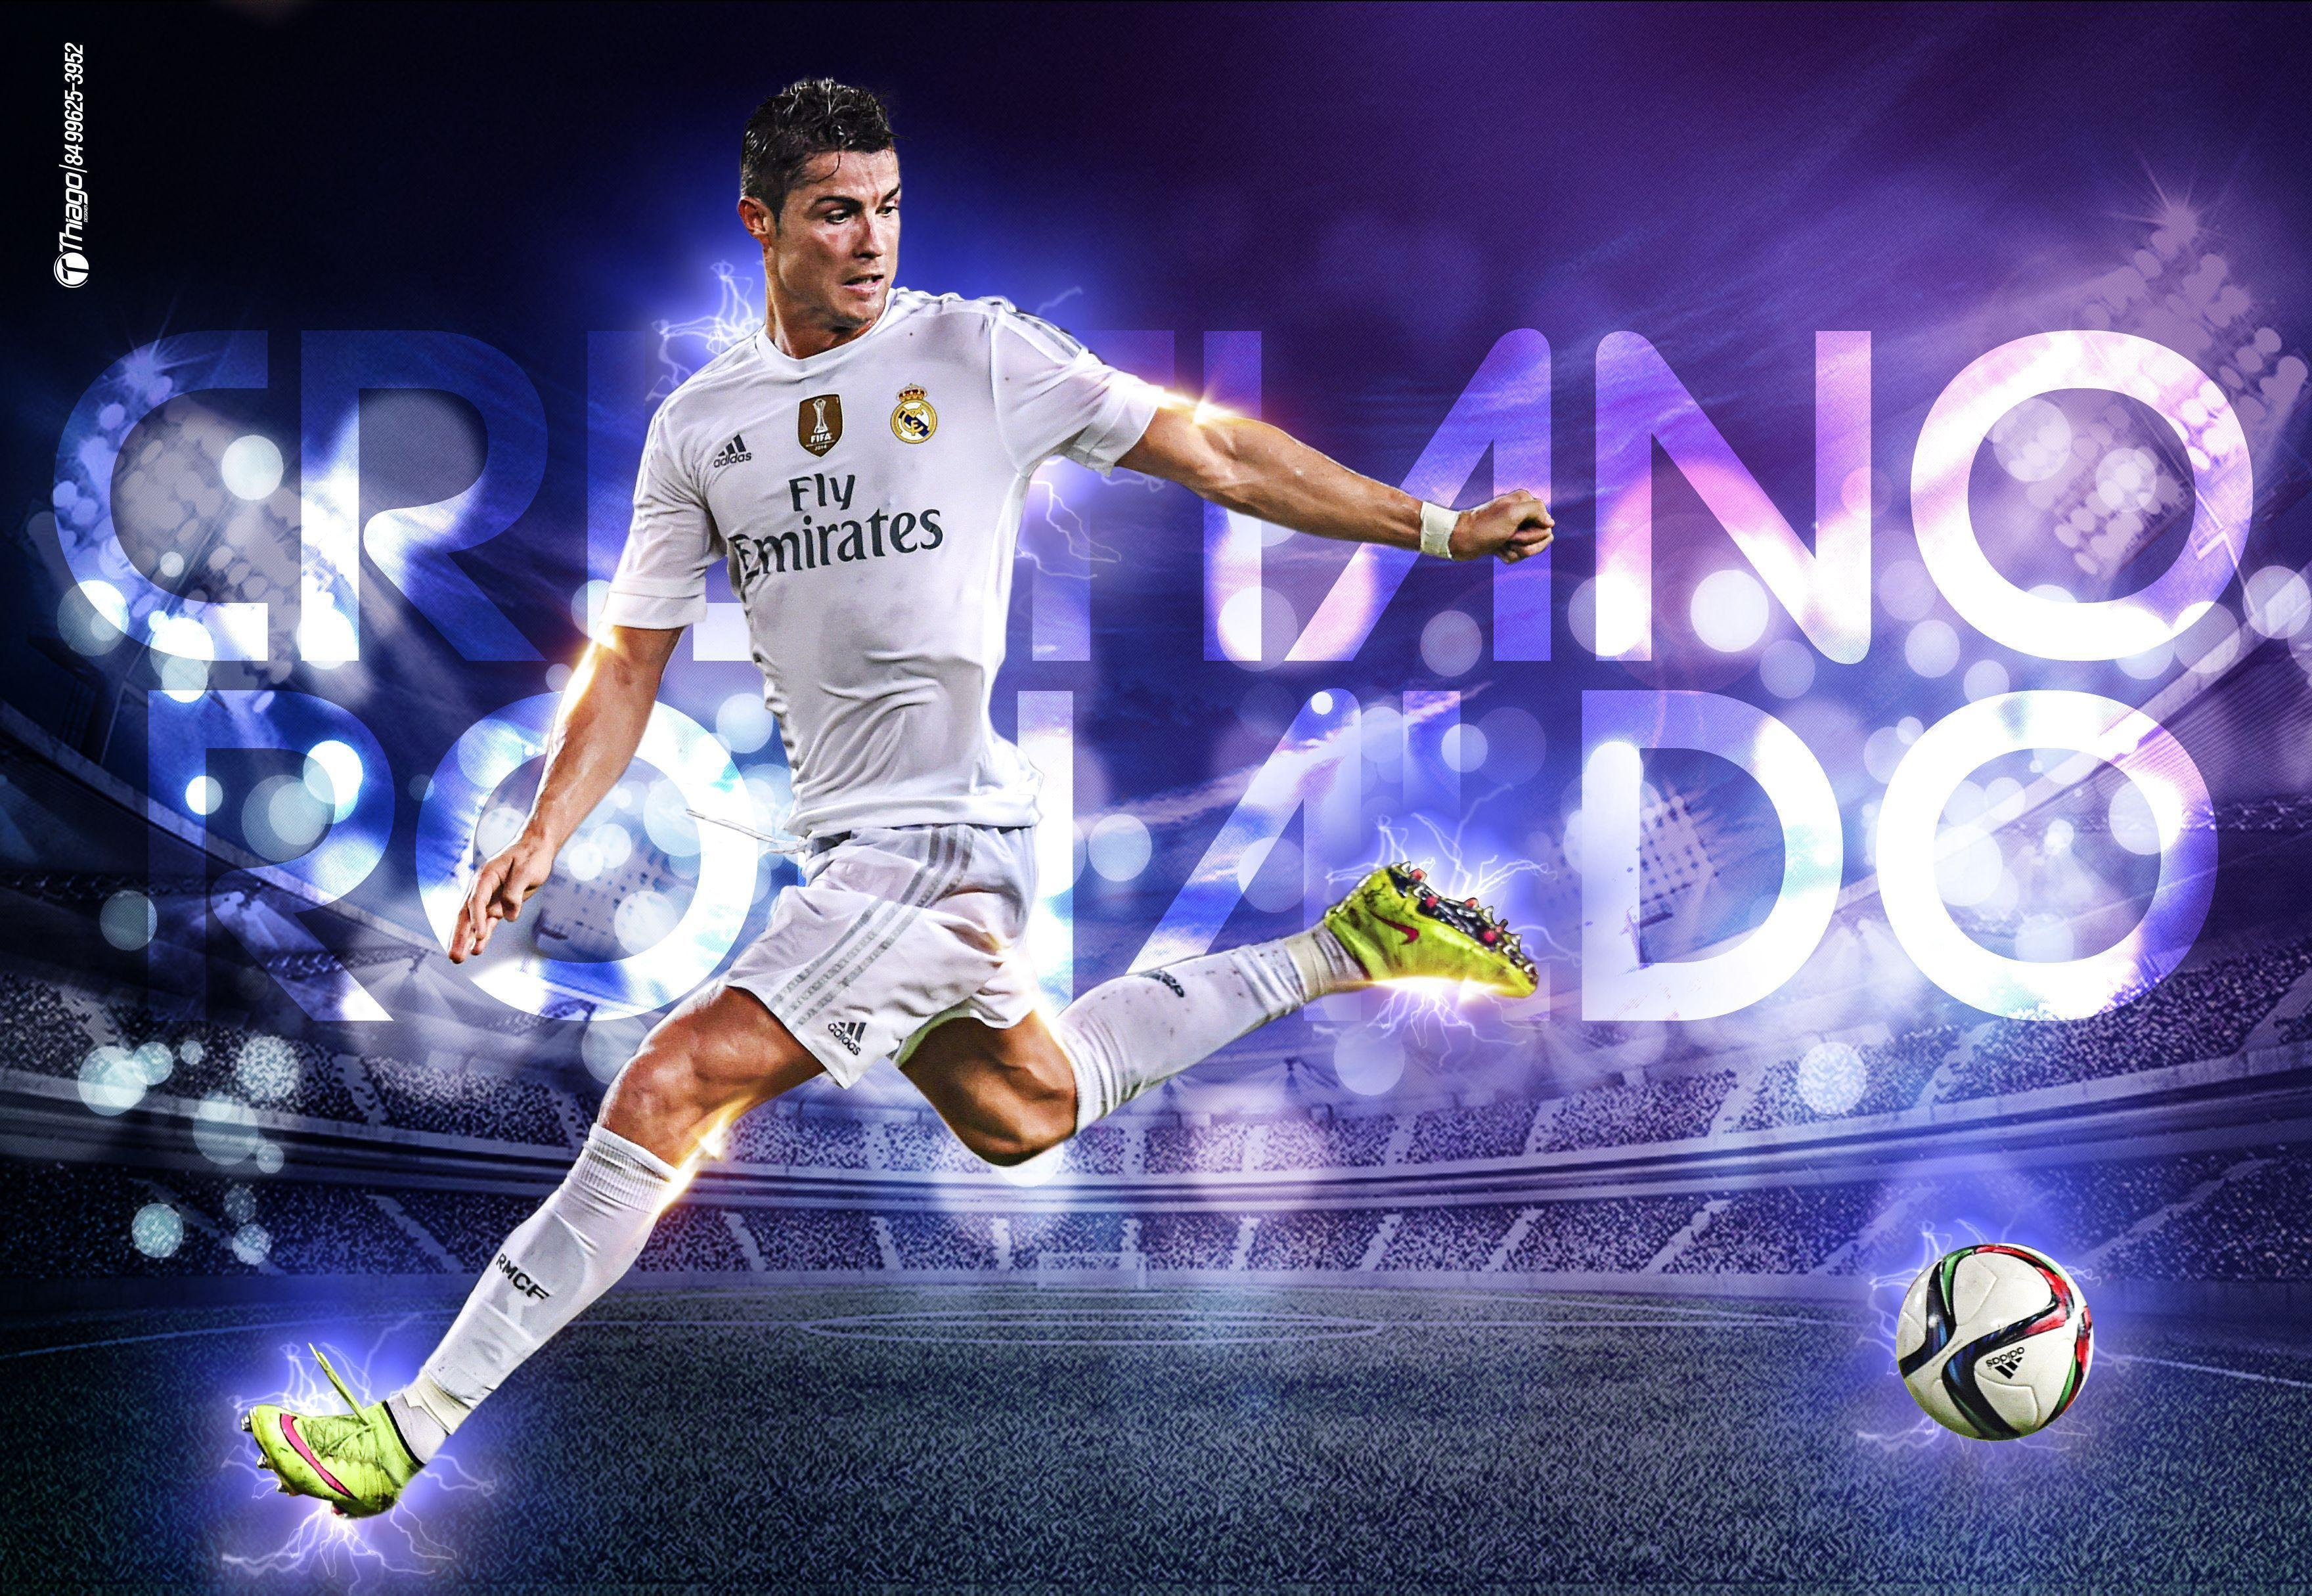 Wallpapers De Cristiano Ronaldo: CR7 And Bale HD Wallpapers 2016